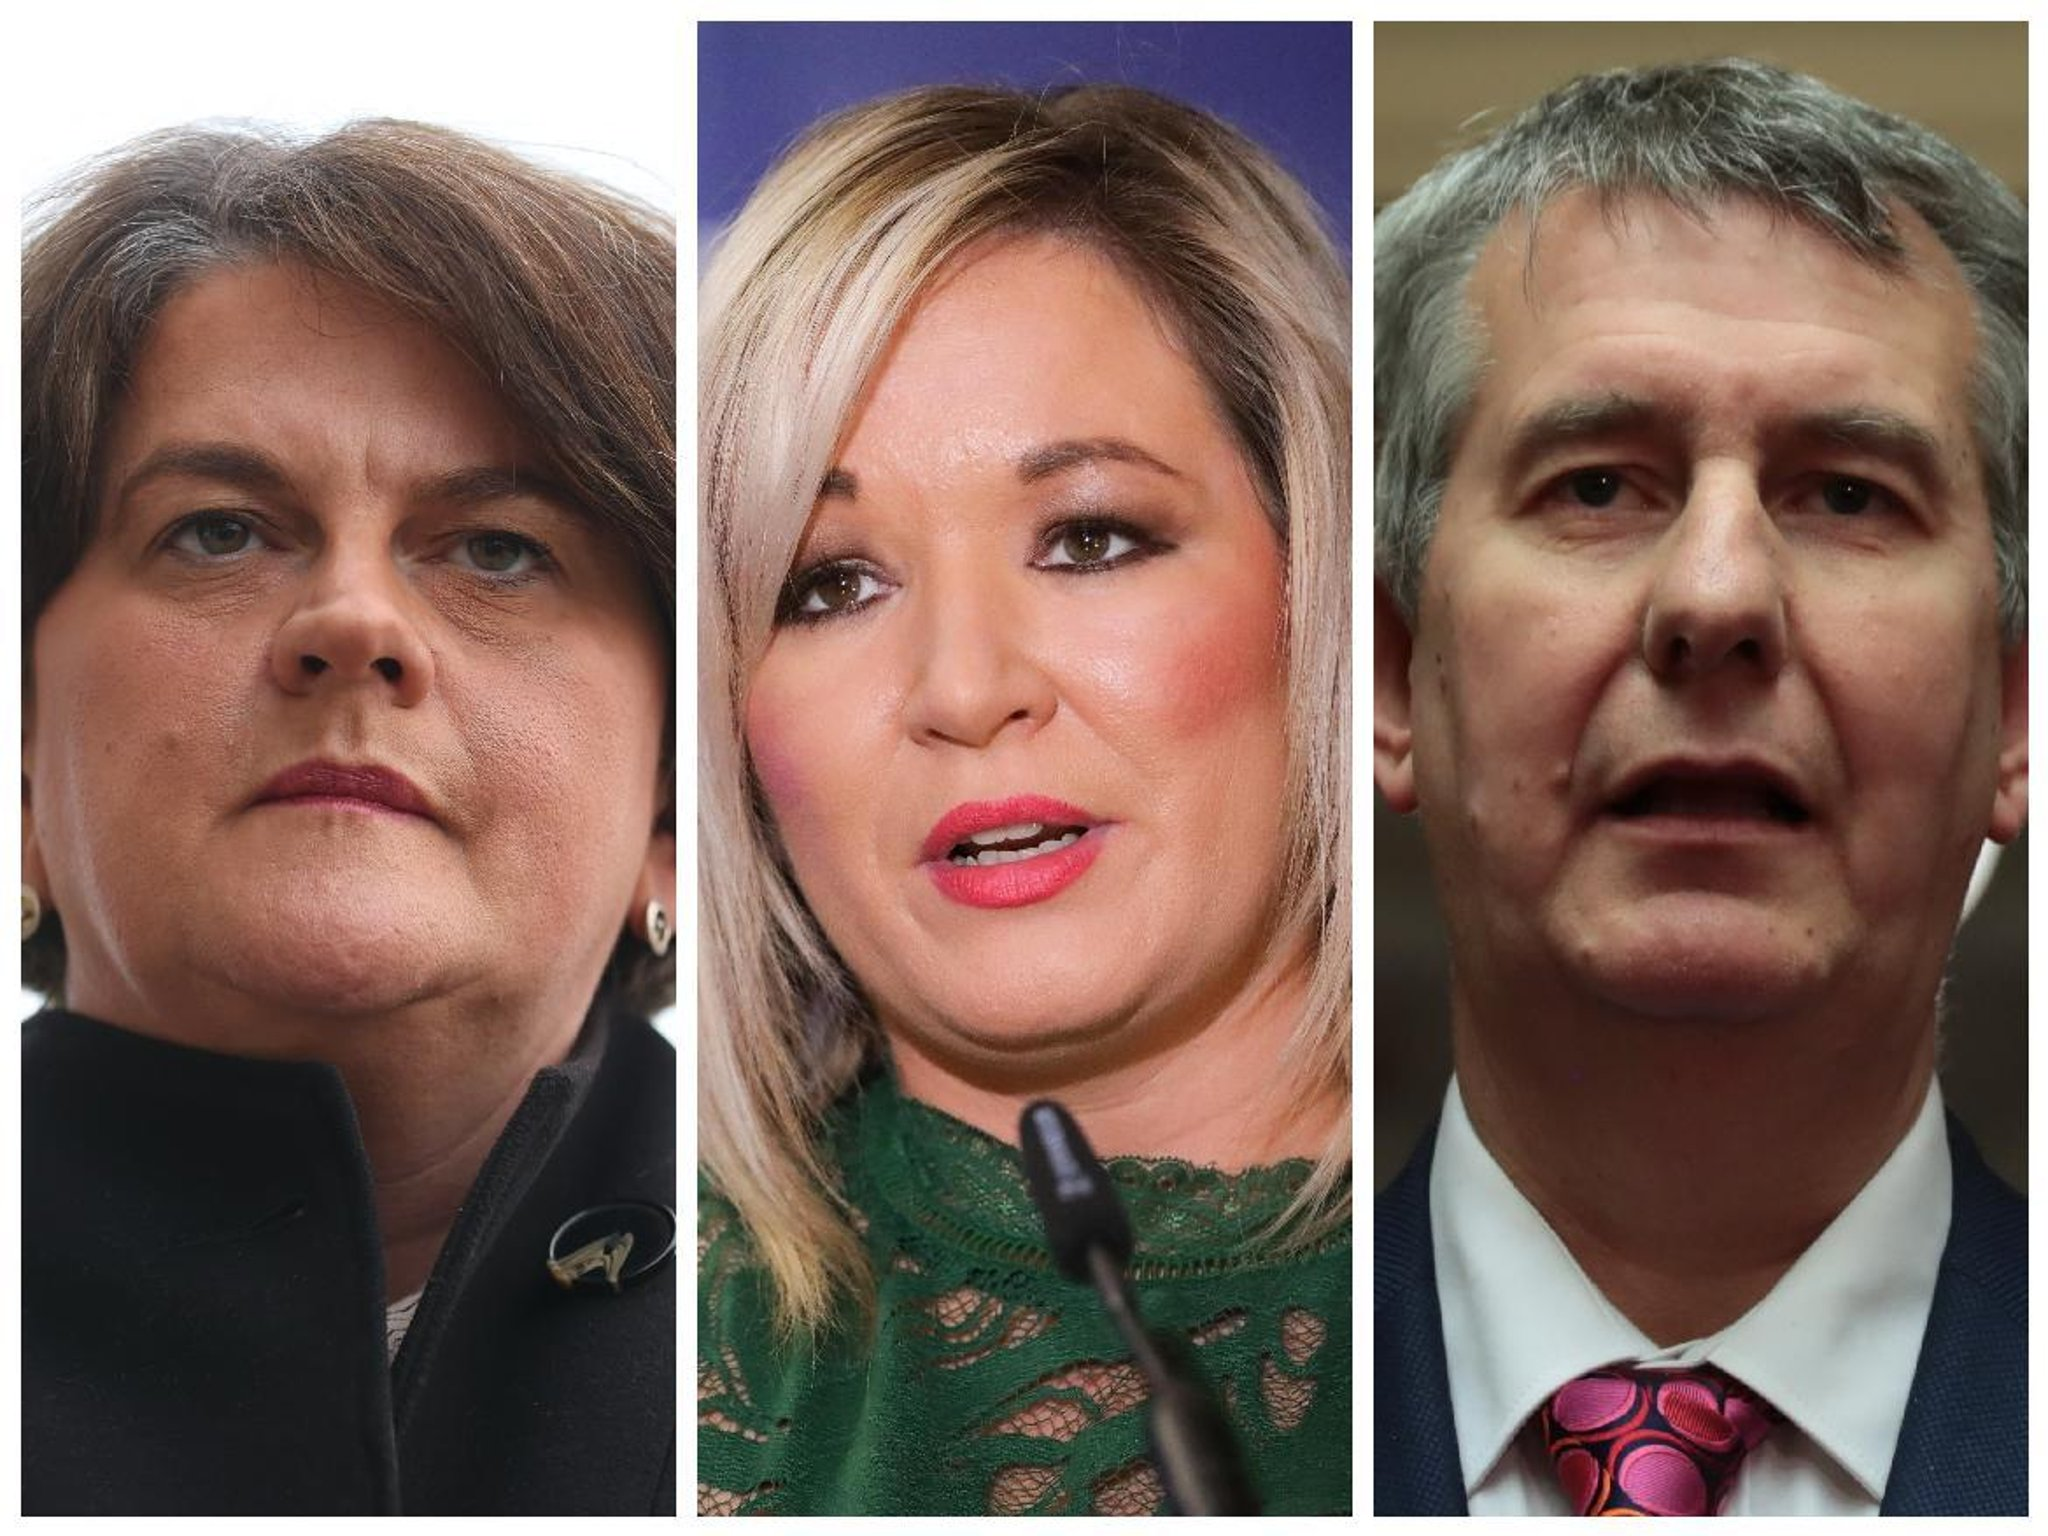 LIVE UPDATES: Arlene Foster - Michelle O'Neill slams 'harebrained' Edwin Poots for withdrawing from North-South meeting